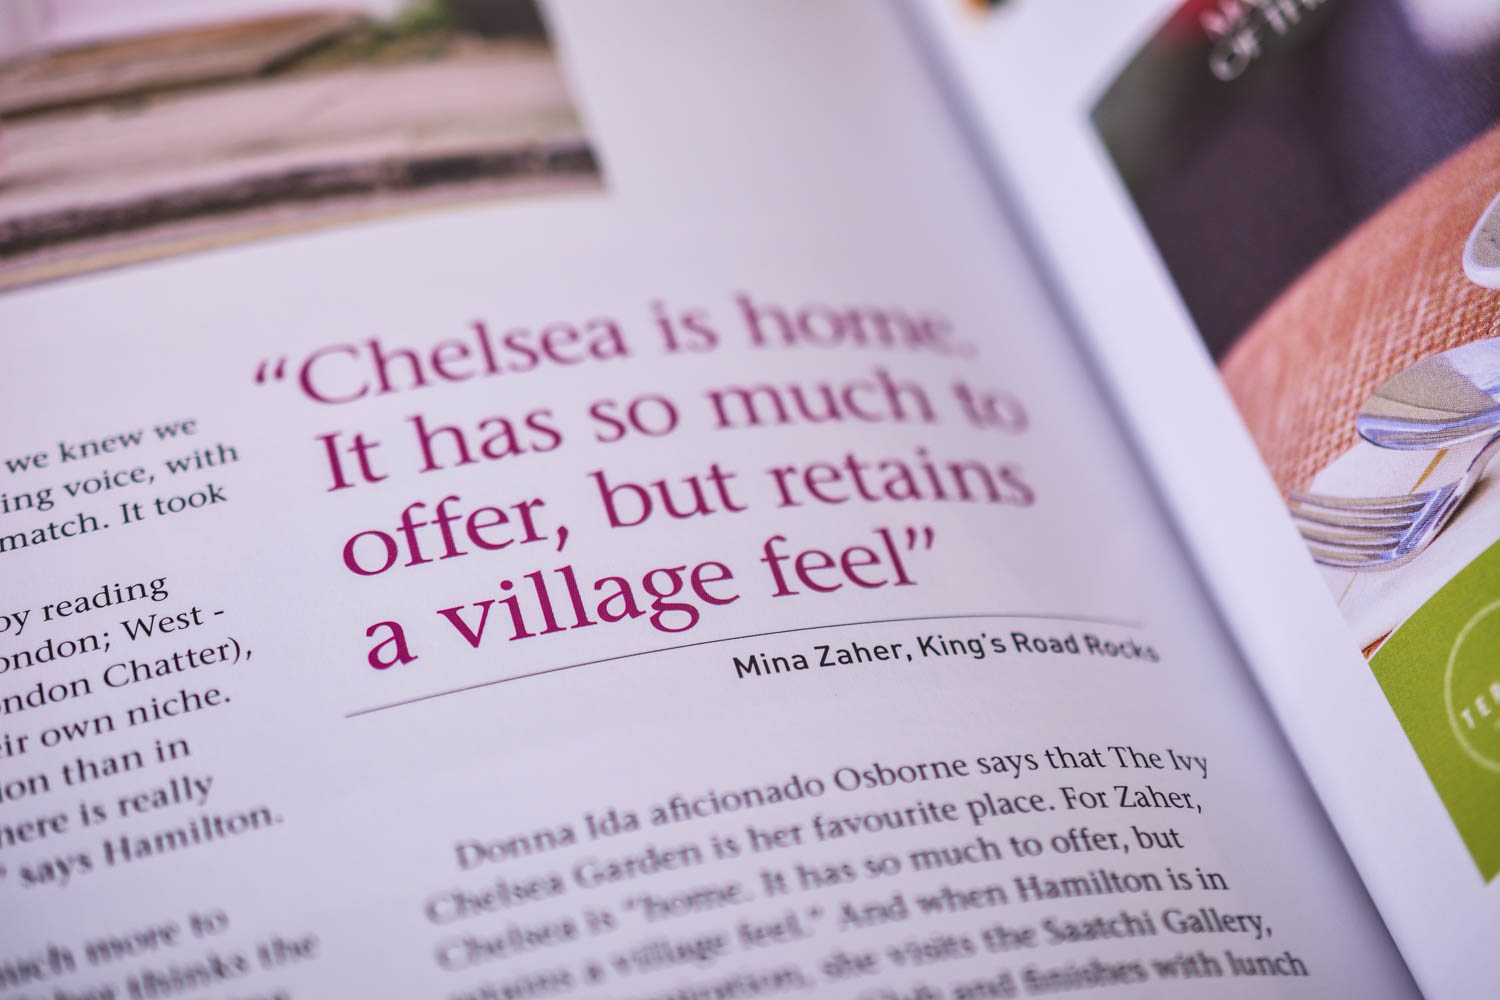 London Fashion Weekend and King's Road Rocks in Sloane Square Magazine